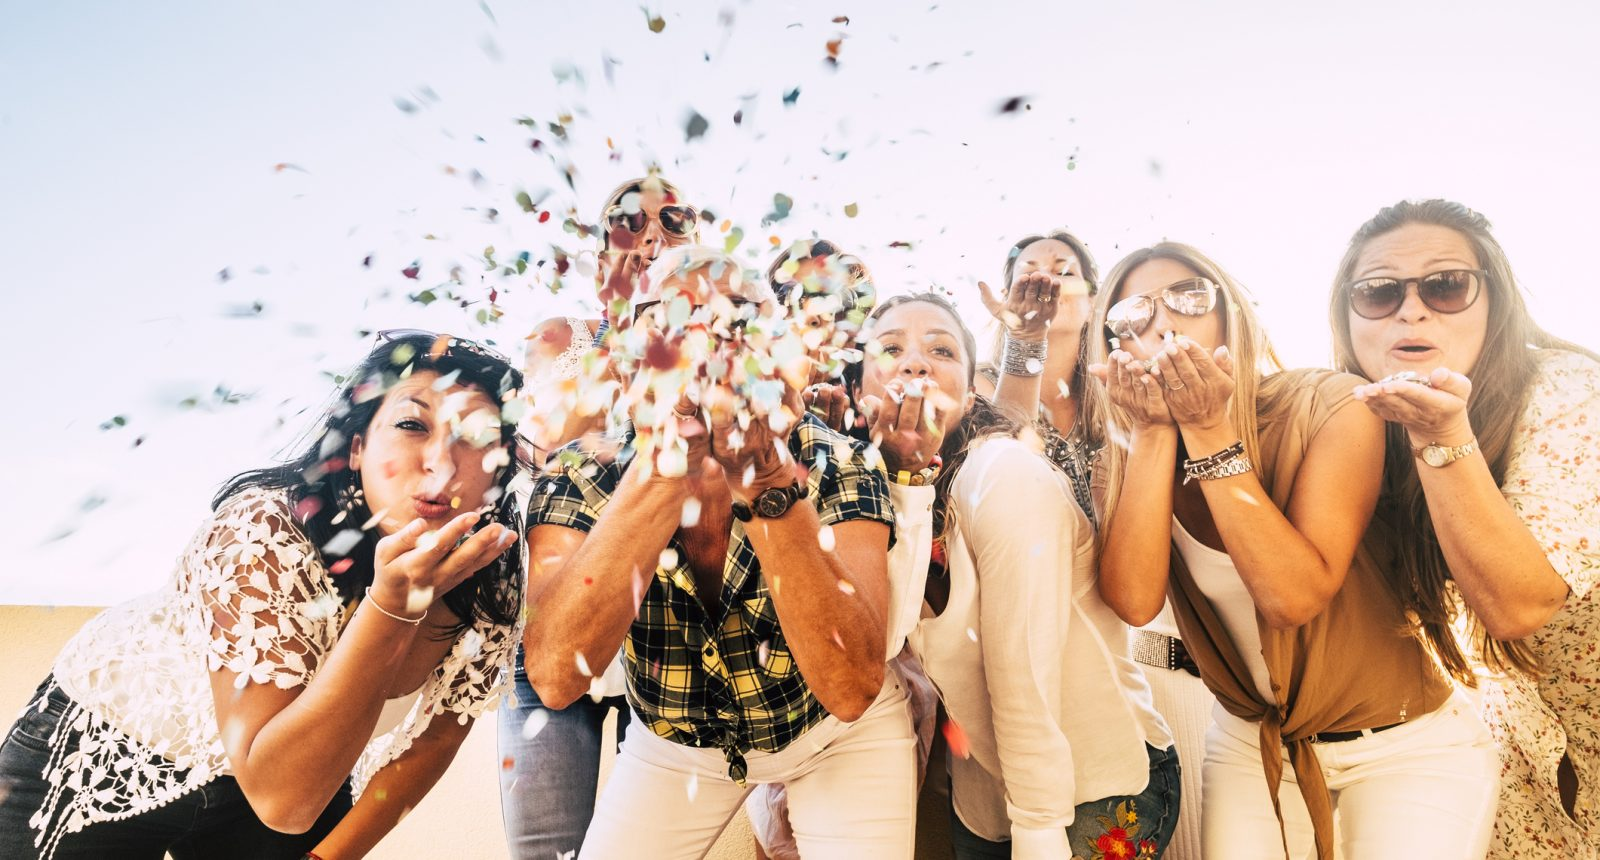 Group of women blowing confetti